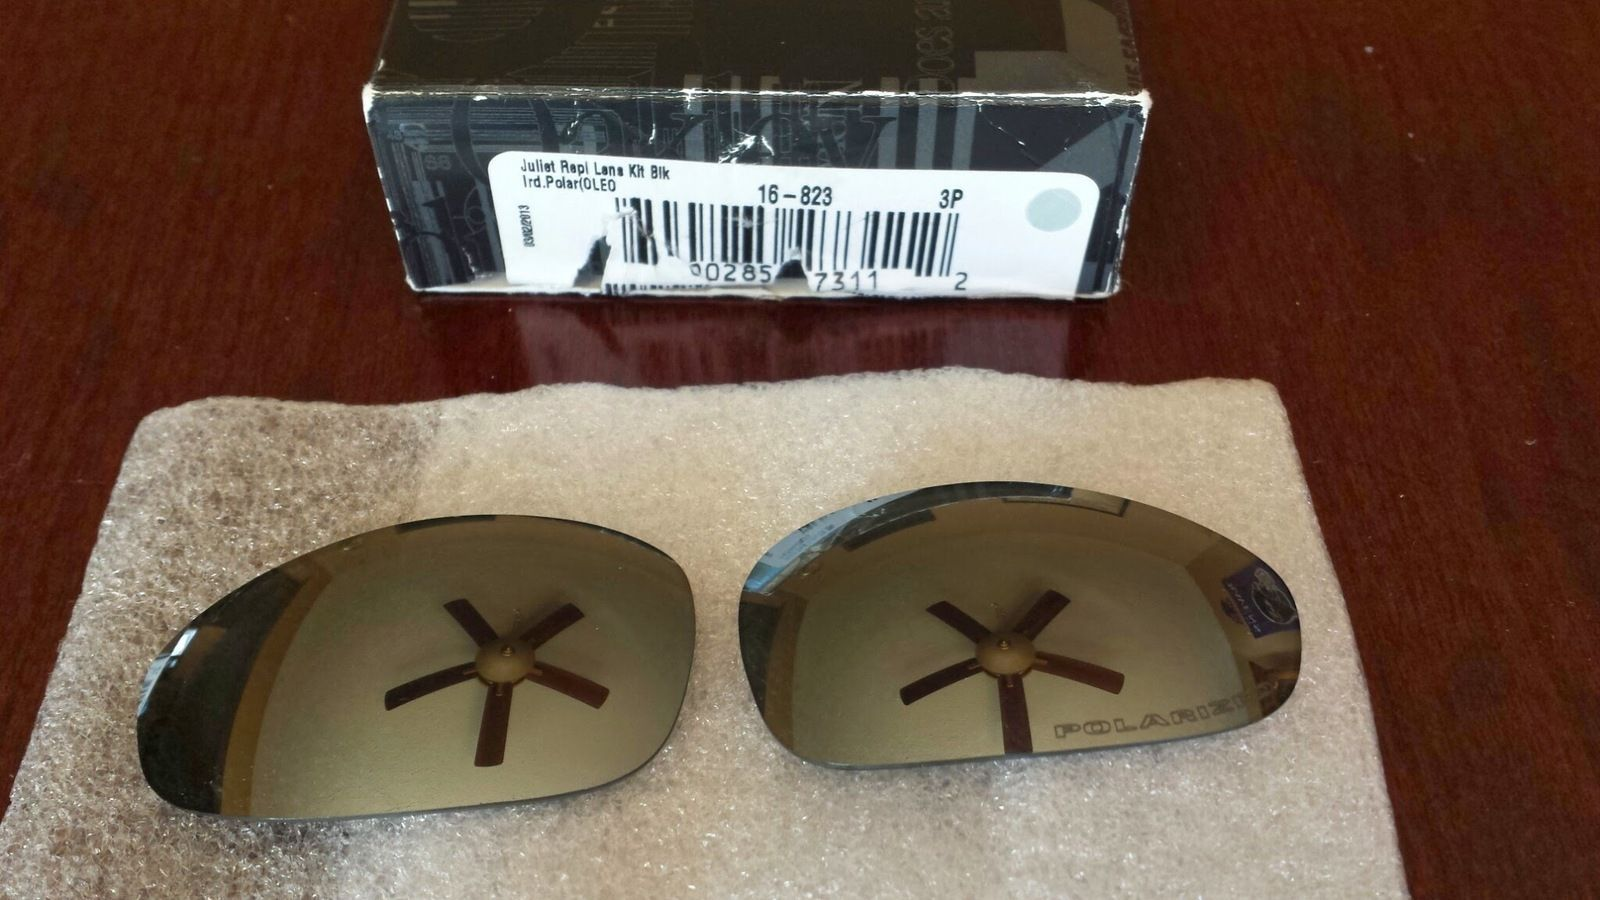 New Juliet Lenses - BI, BIPx2, Fire, Rubyx2 - All 6 For $400 - 20140320_154734.jpg